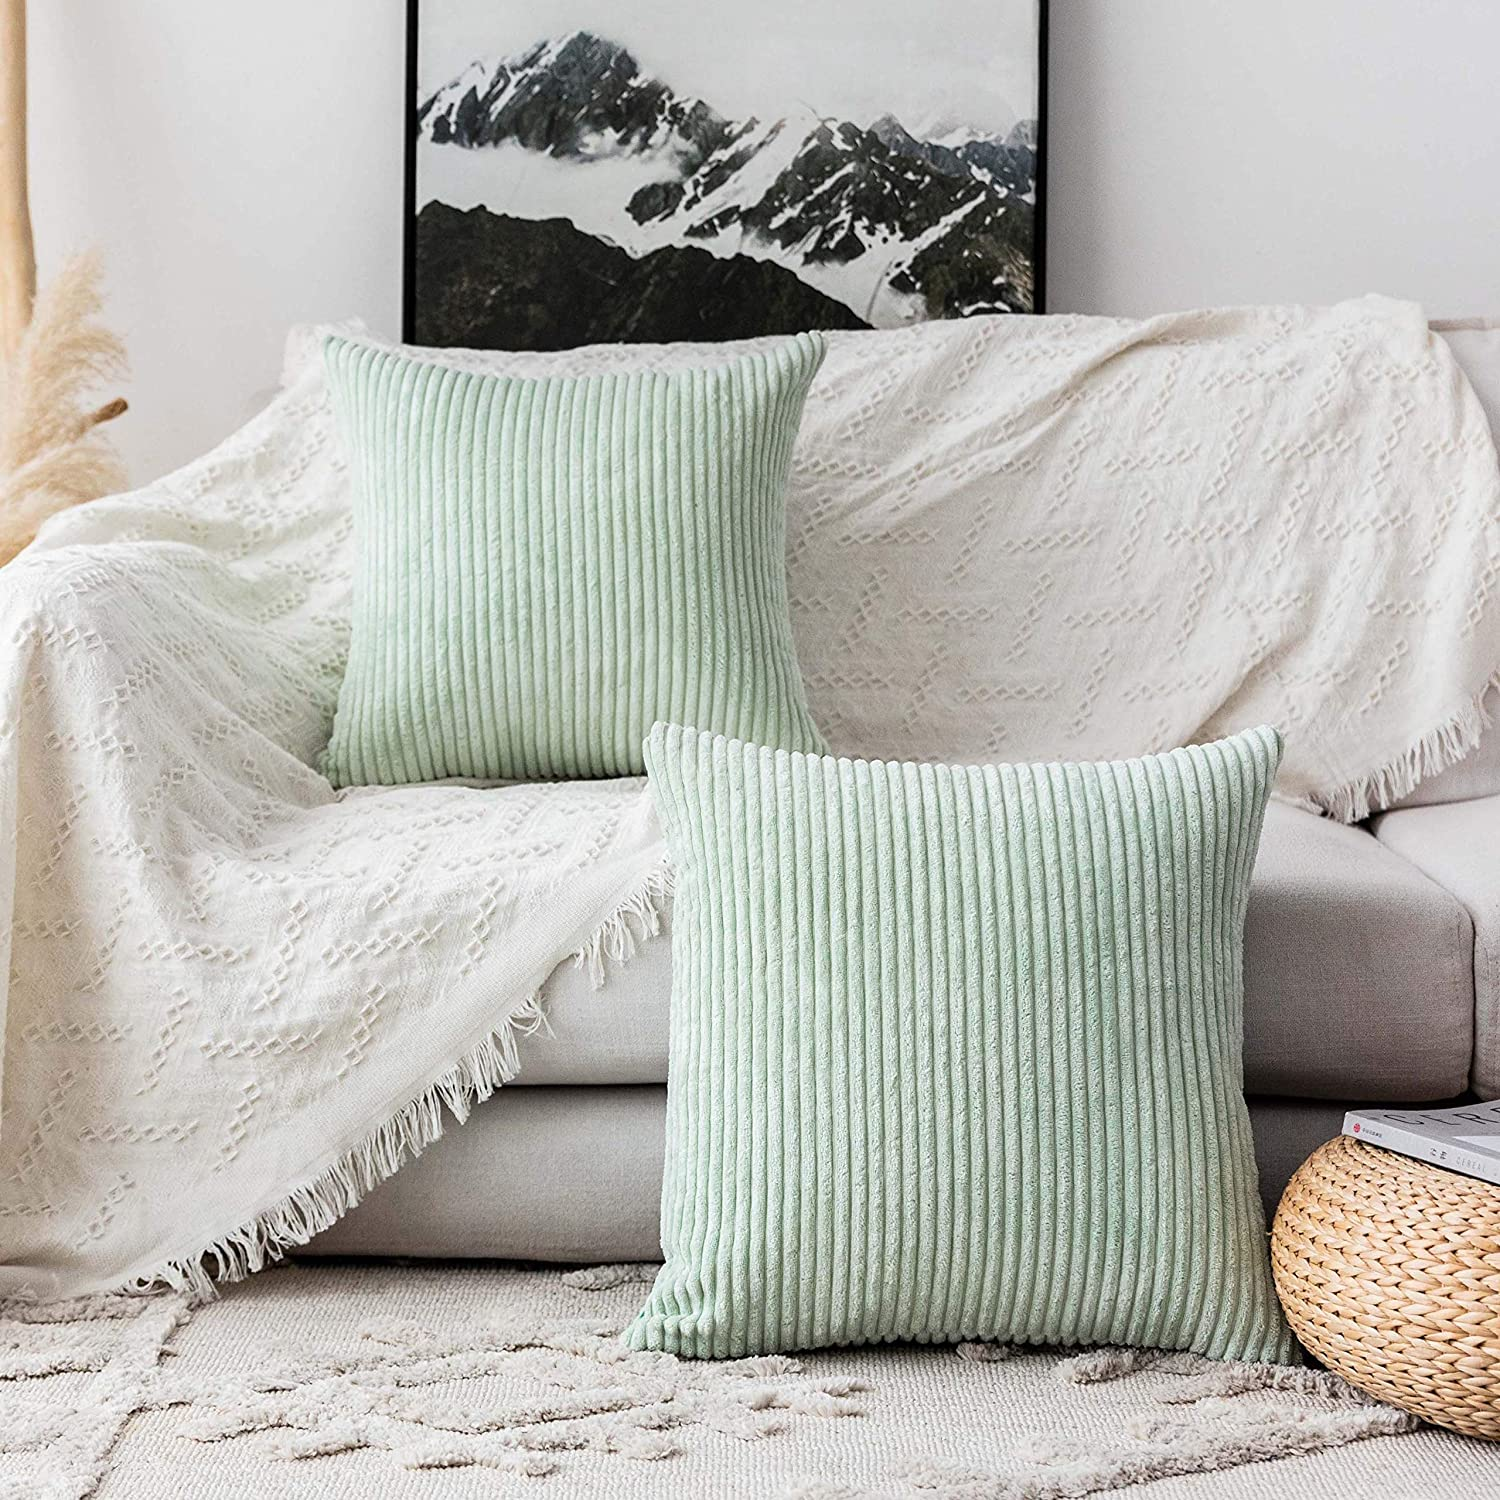 Home Brilliant Decorative Pillow Covers for Couch Throw Pillow Covers Sofa Bench, Set of 2, 18x18 inches, 45cm, Mint